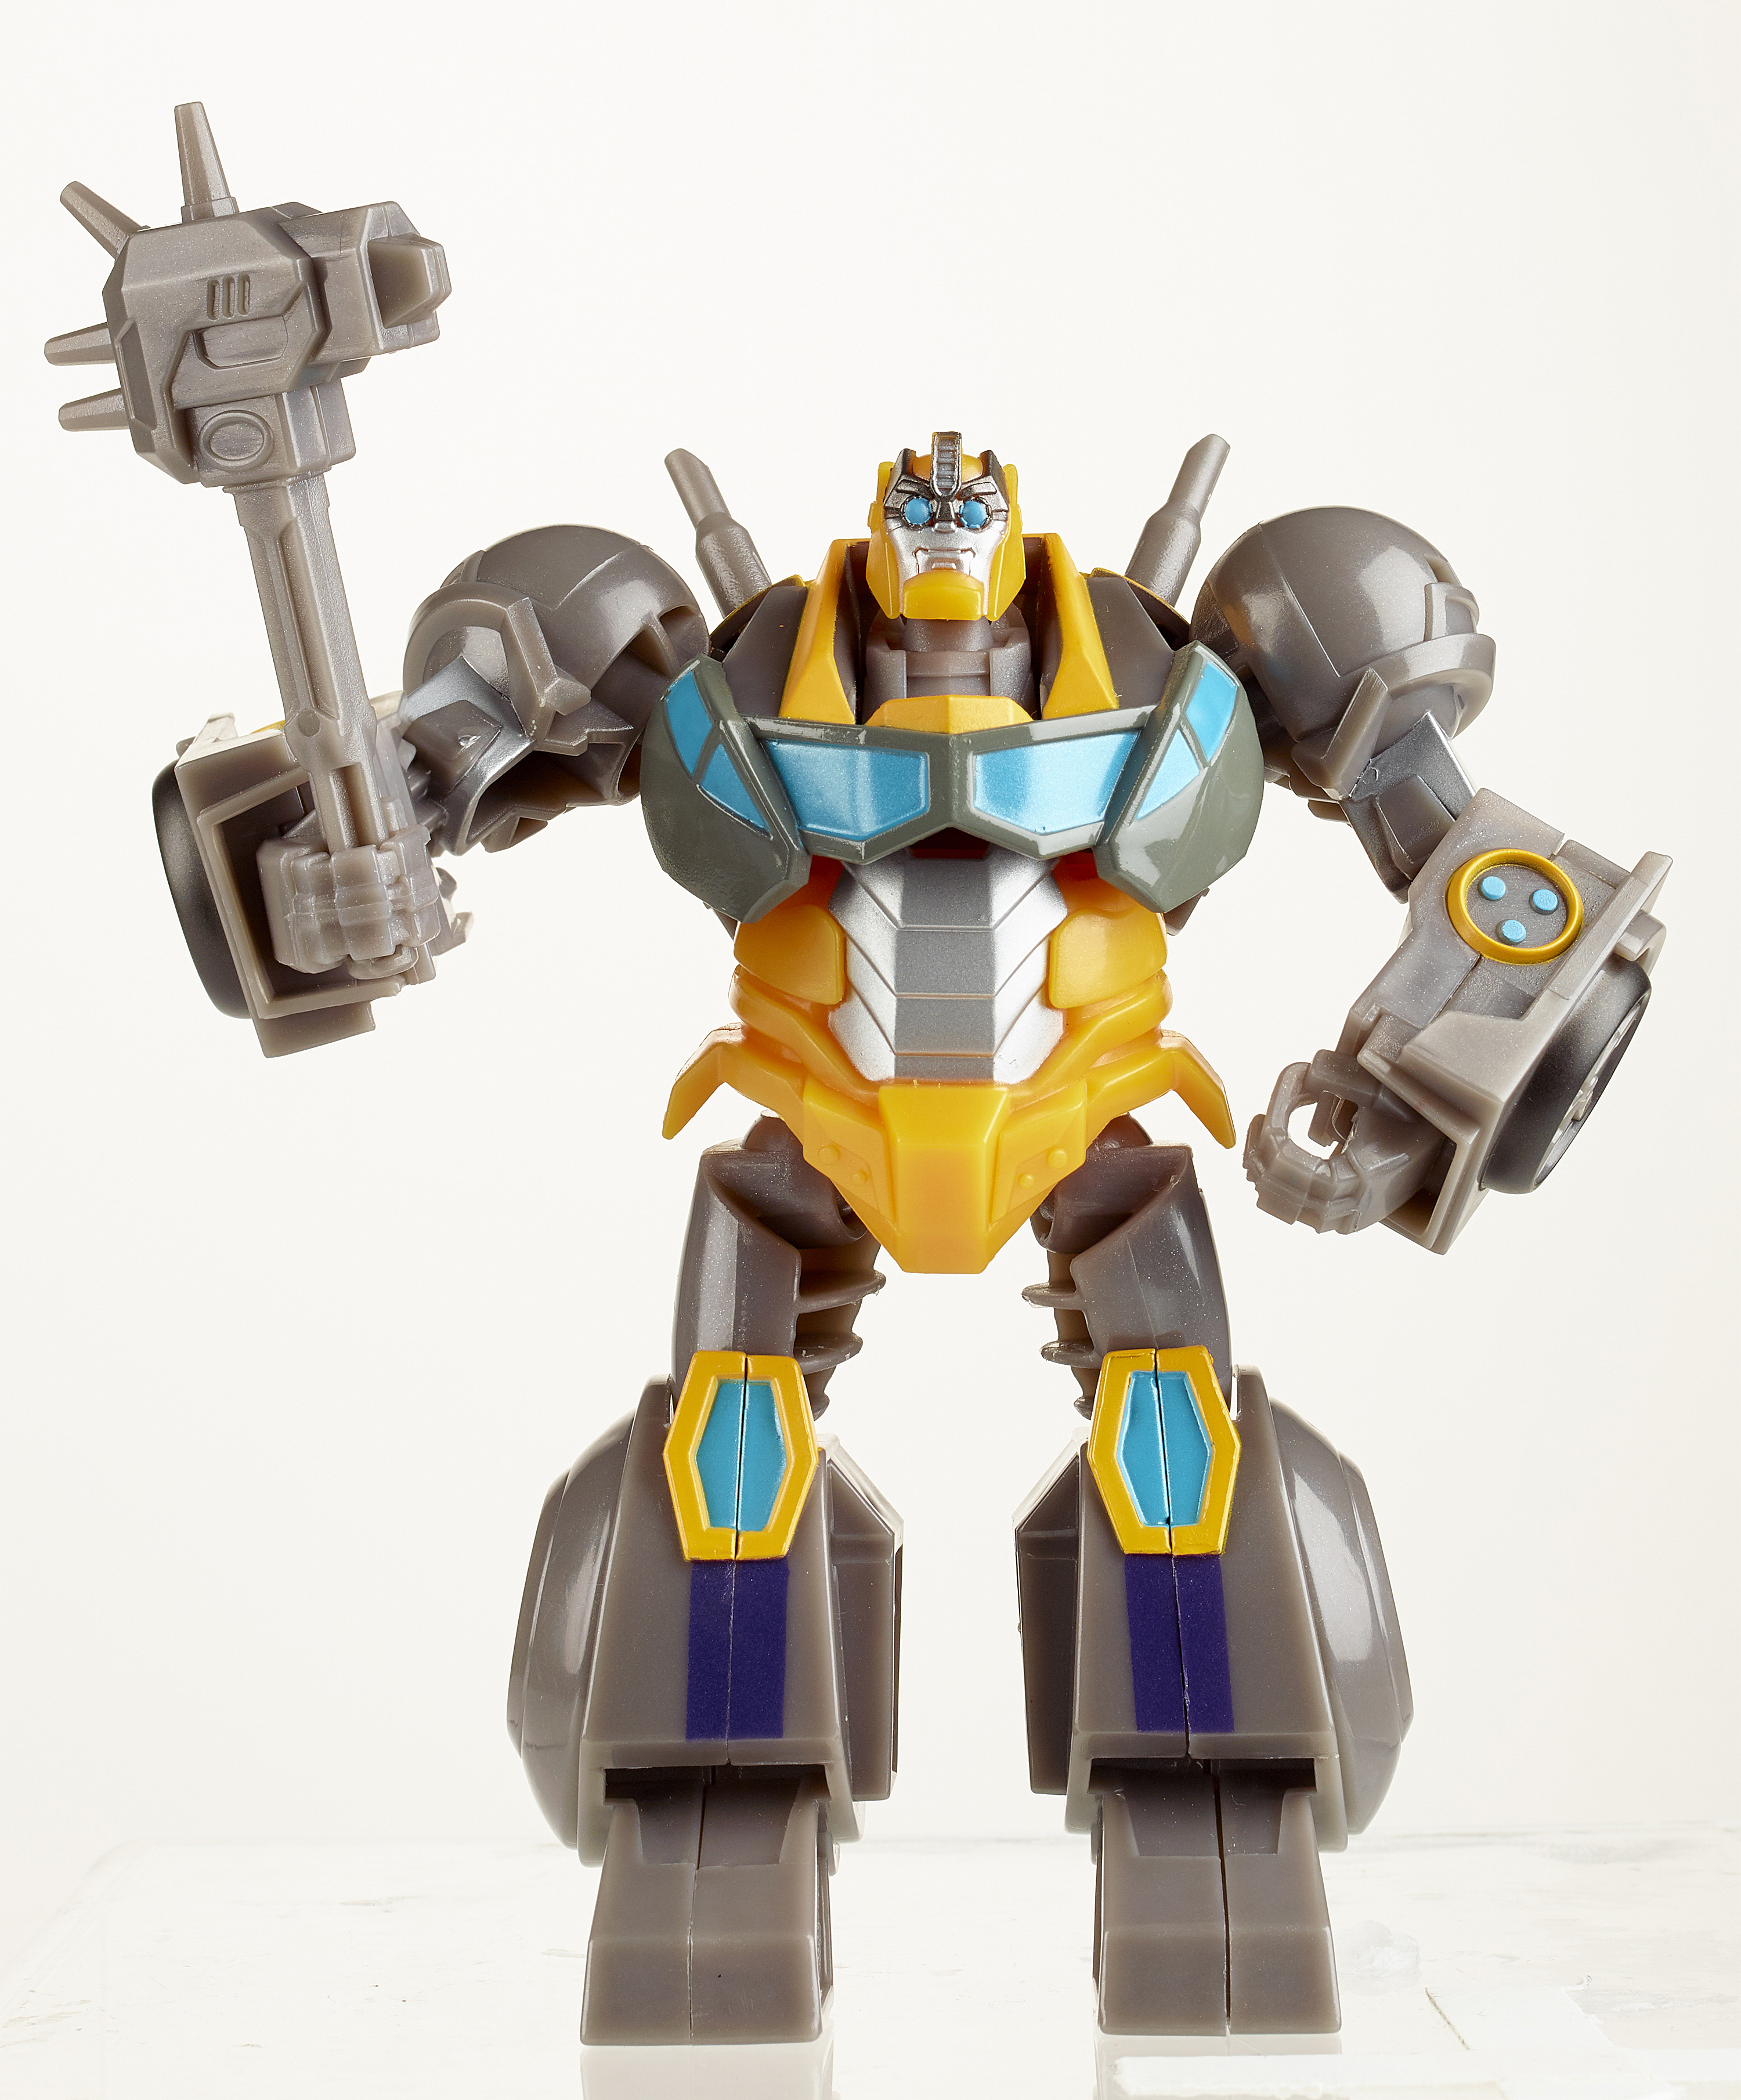 Transformers Robots in Disguise One Step Changer 6 Figure Special Edition Pack